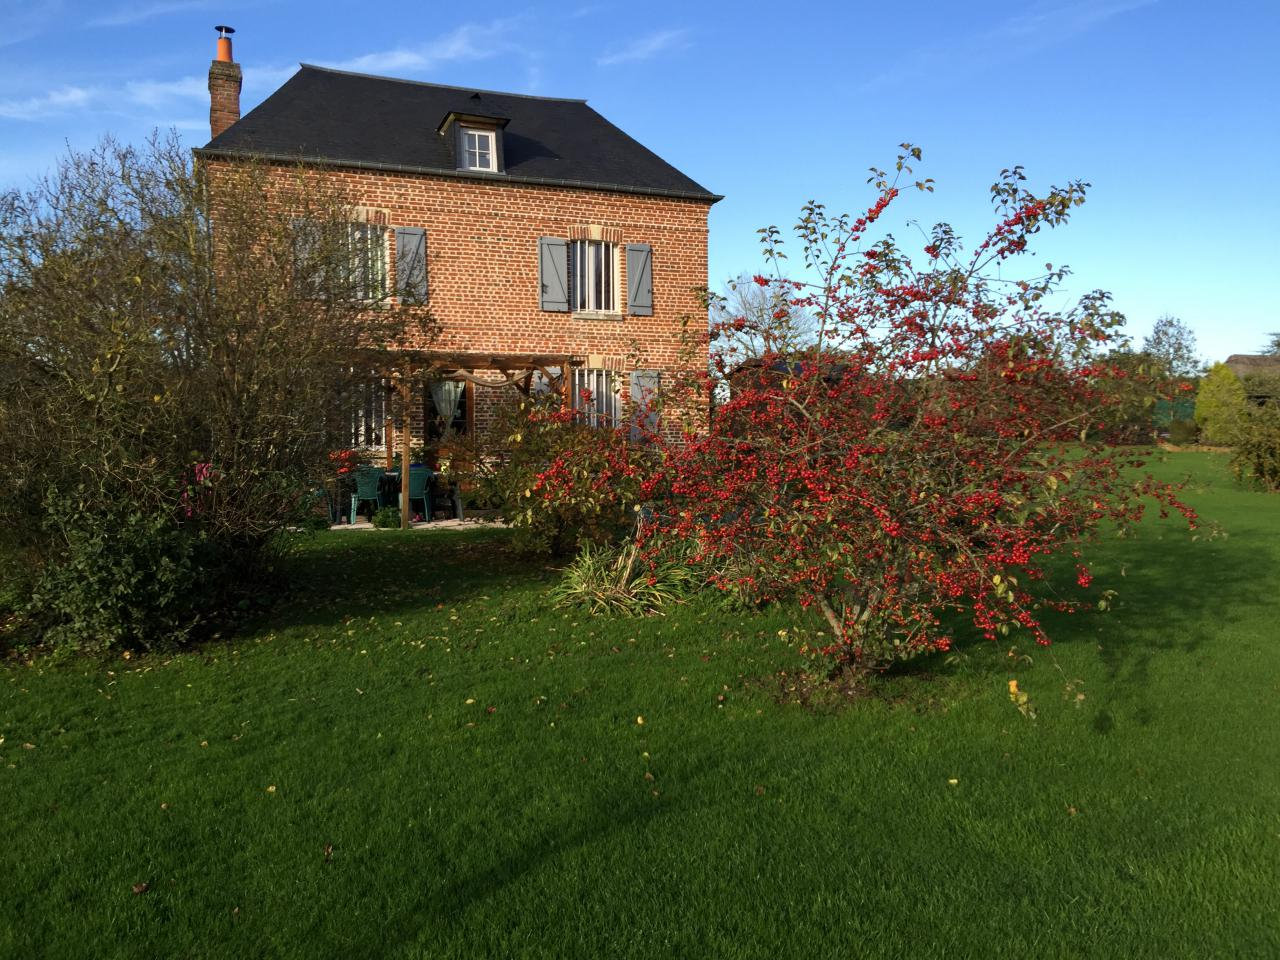 Nord ouest lisieux 14 propriete herbagere 252590 for Appartement nord ouest